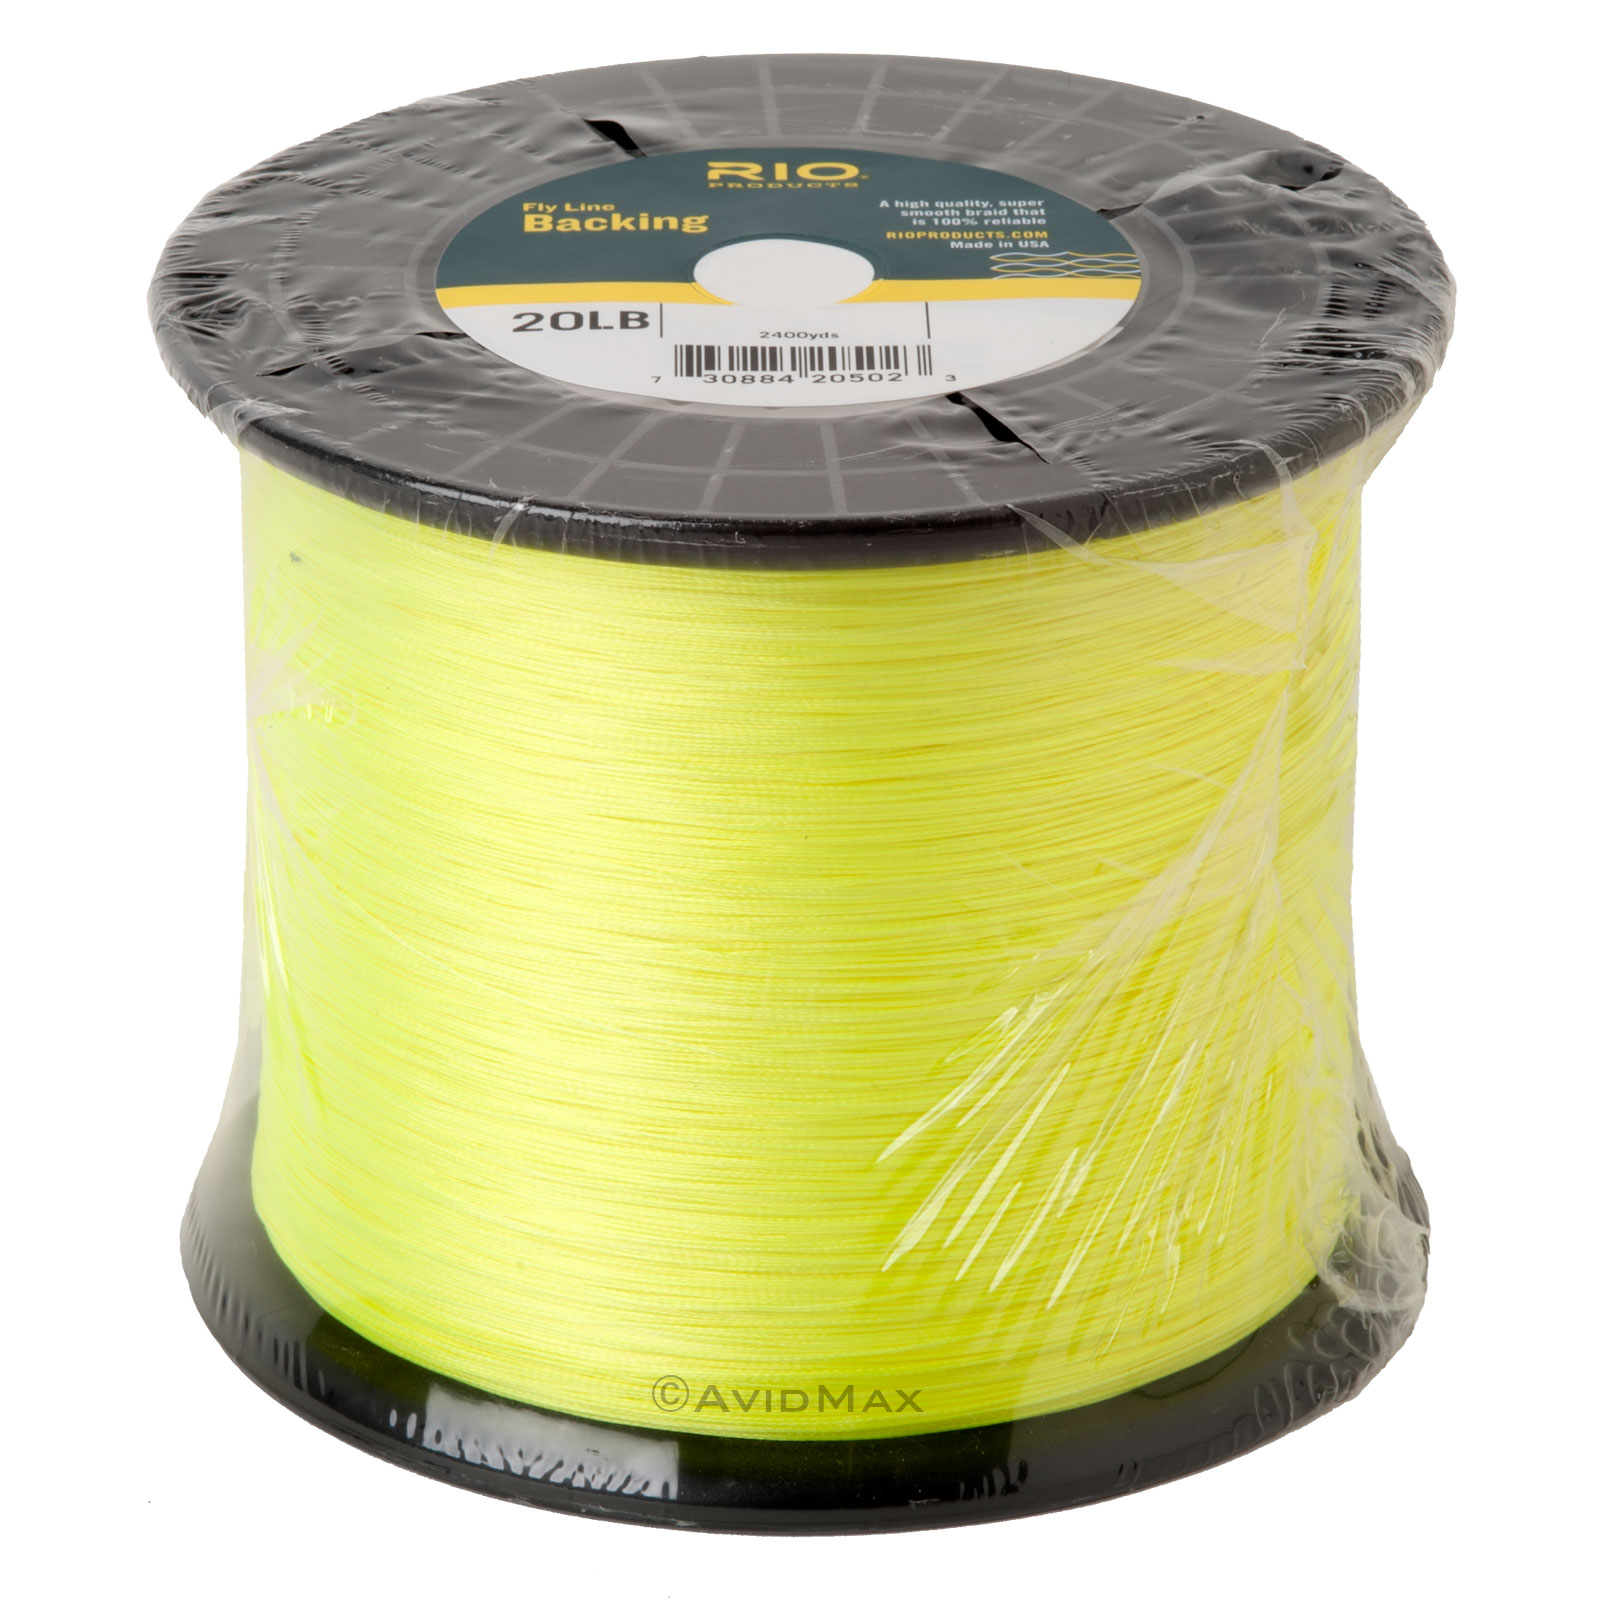 Rio dacron fly line backing 20 or 30 lb 100 to 5000 yd for Fly fishing backing